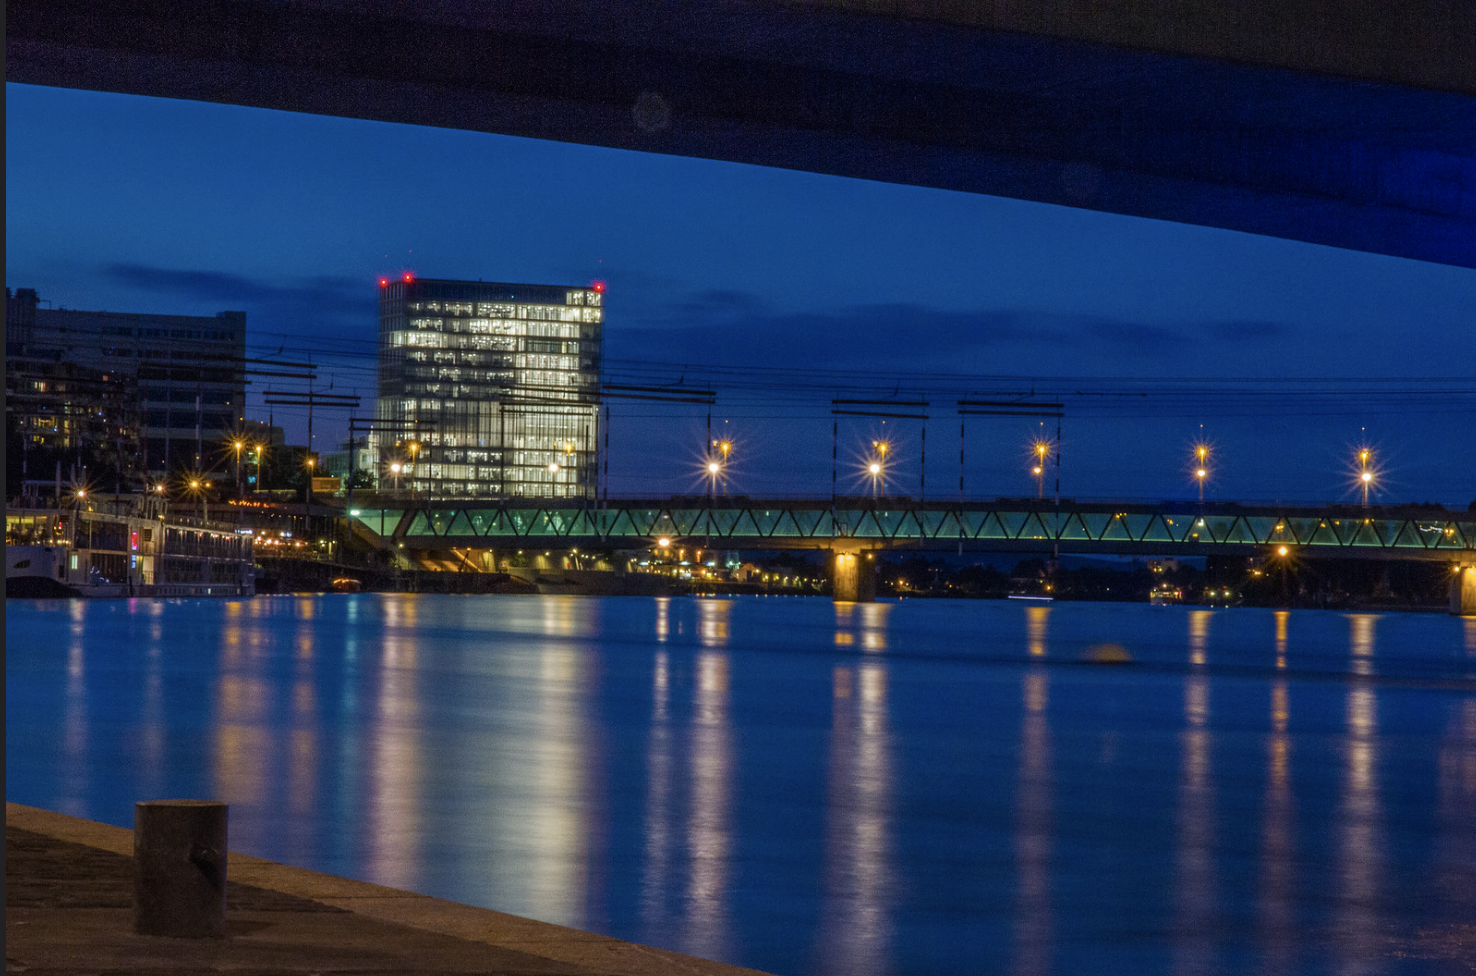 Headquarters of the multinational pharmaceutical company Novartis on the Rhine River in Basel, Switzerland, September 6, 2016 (Photo by Elodie M) Creative Commons license via Flickr